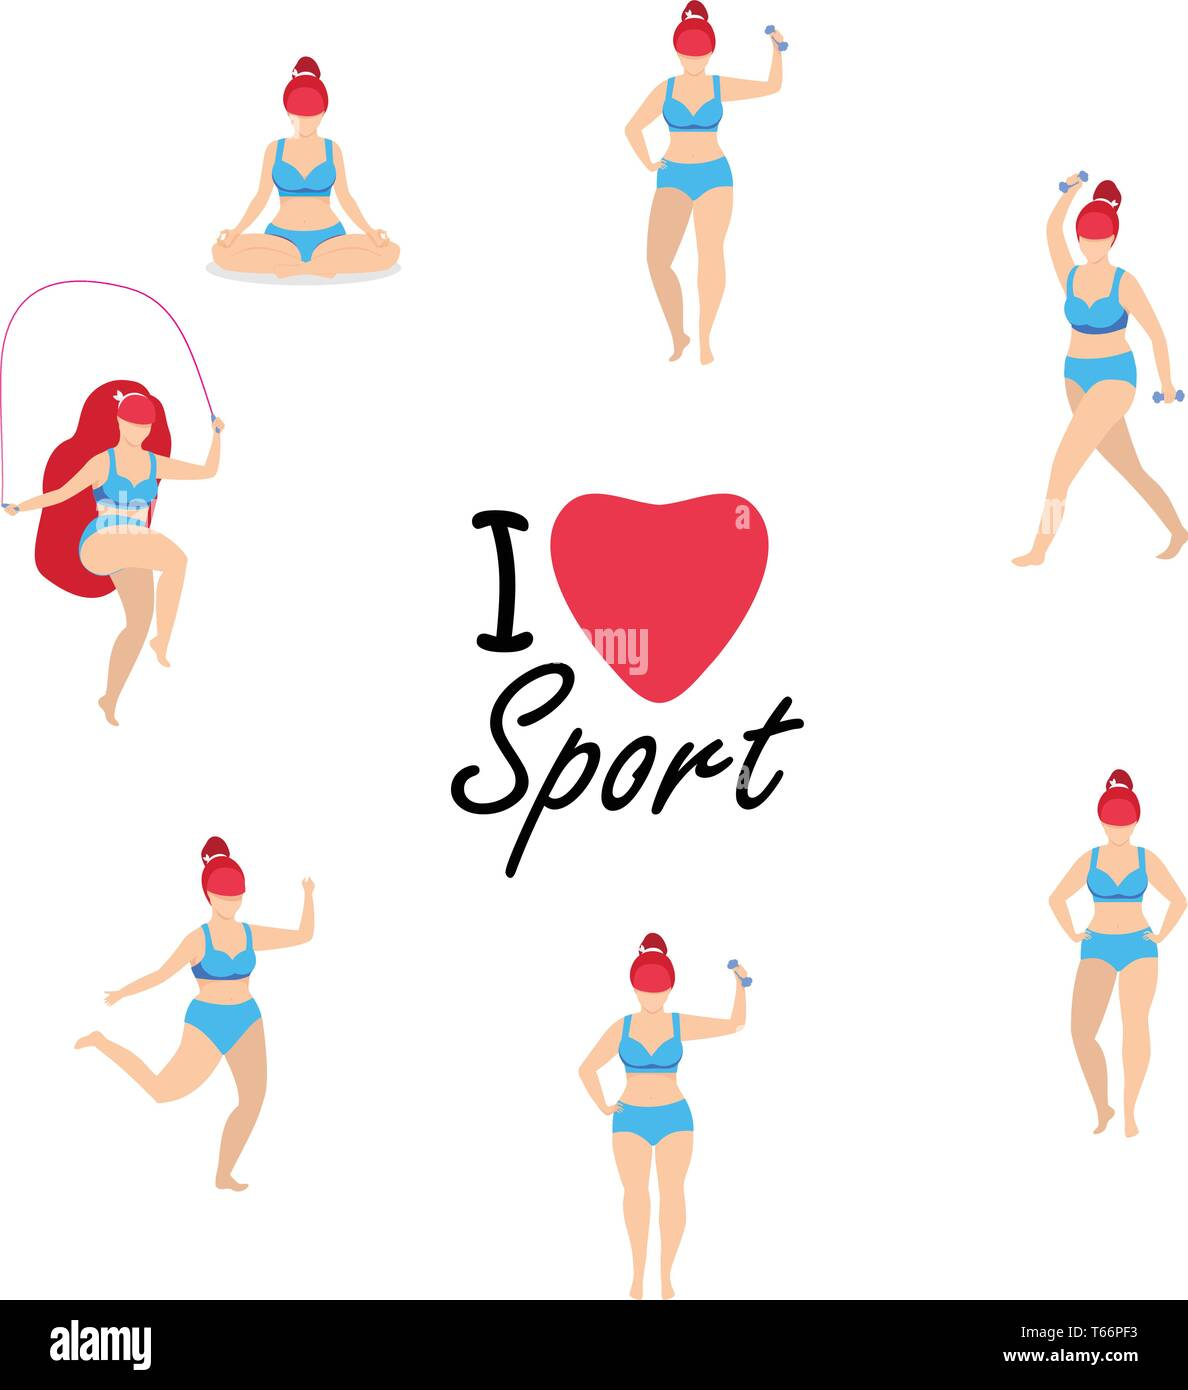 Workout Girl Set. Woman Doing Full Body Fitness, Yoga Exercises with Dumbbells, Jumping Rope. Fitness, Weight Loss. Plus Size I Love Sport Cartoon Fla - Stock Vector